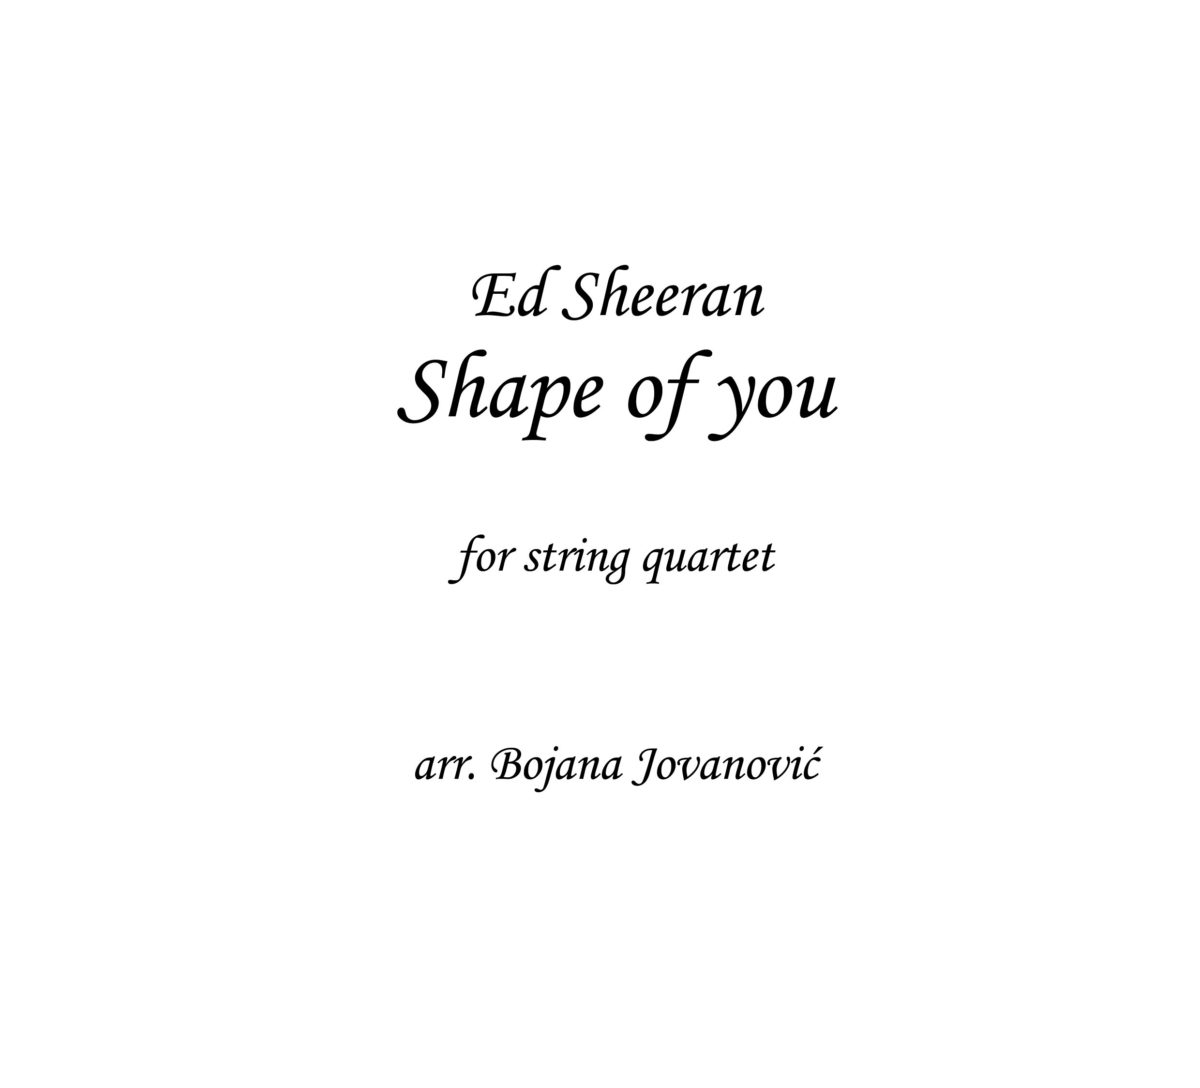 Ed Sheeran Shape of you Sheet music